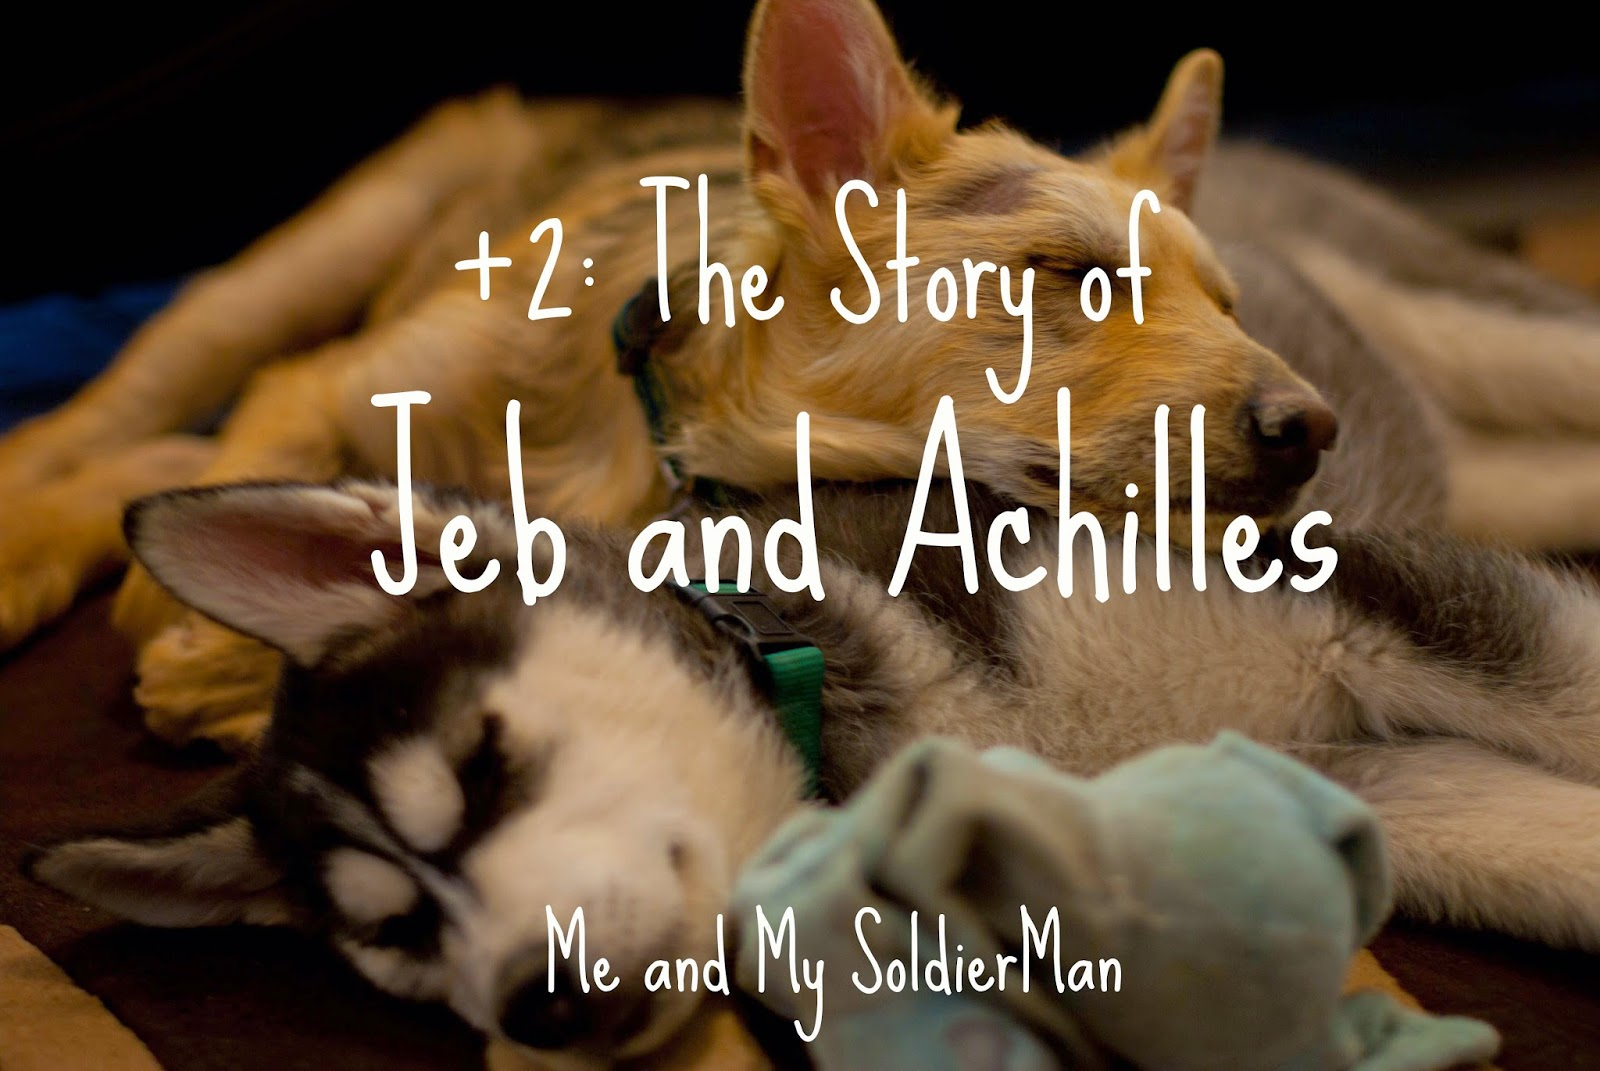 Me and My SoldierMan: +2: The Story of Jeb and Achilles http://www.meandmysoldierman.com/2011/02/2.html